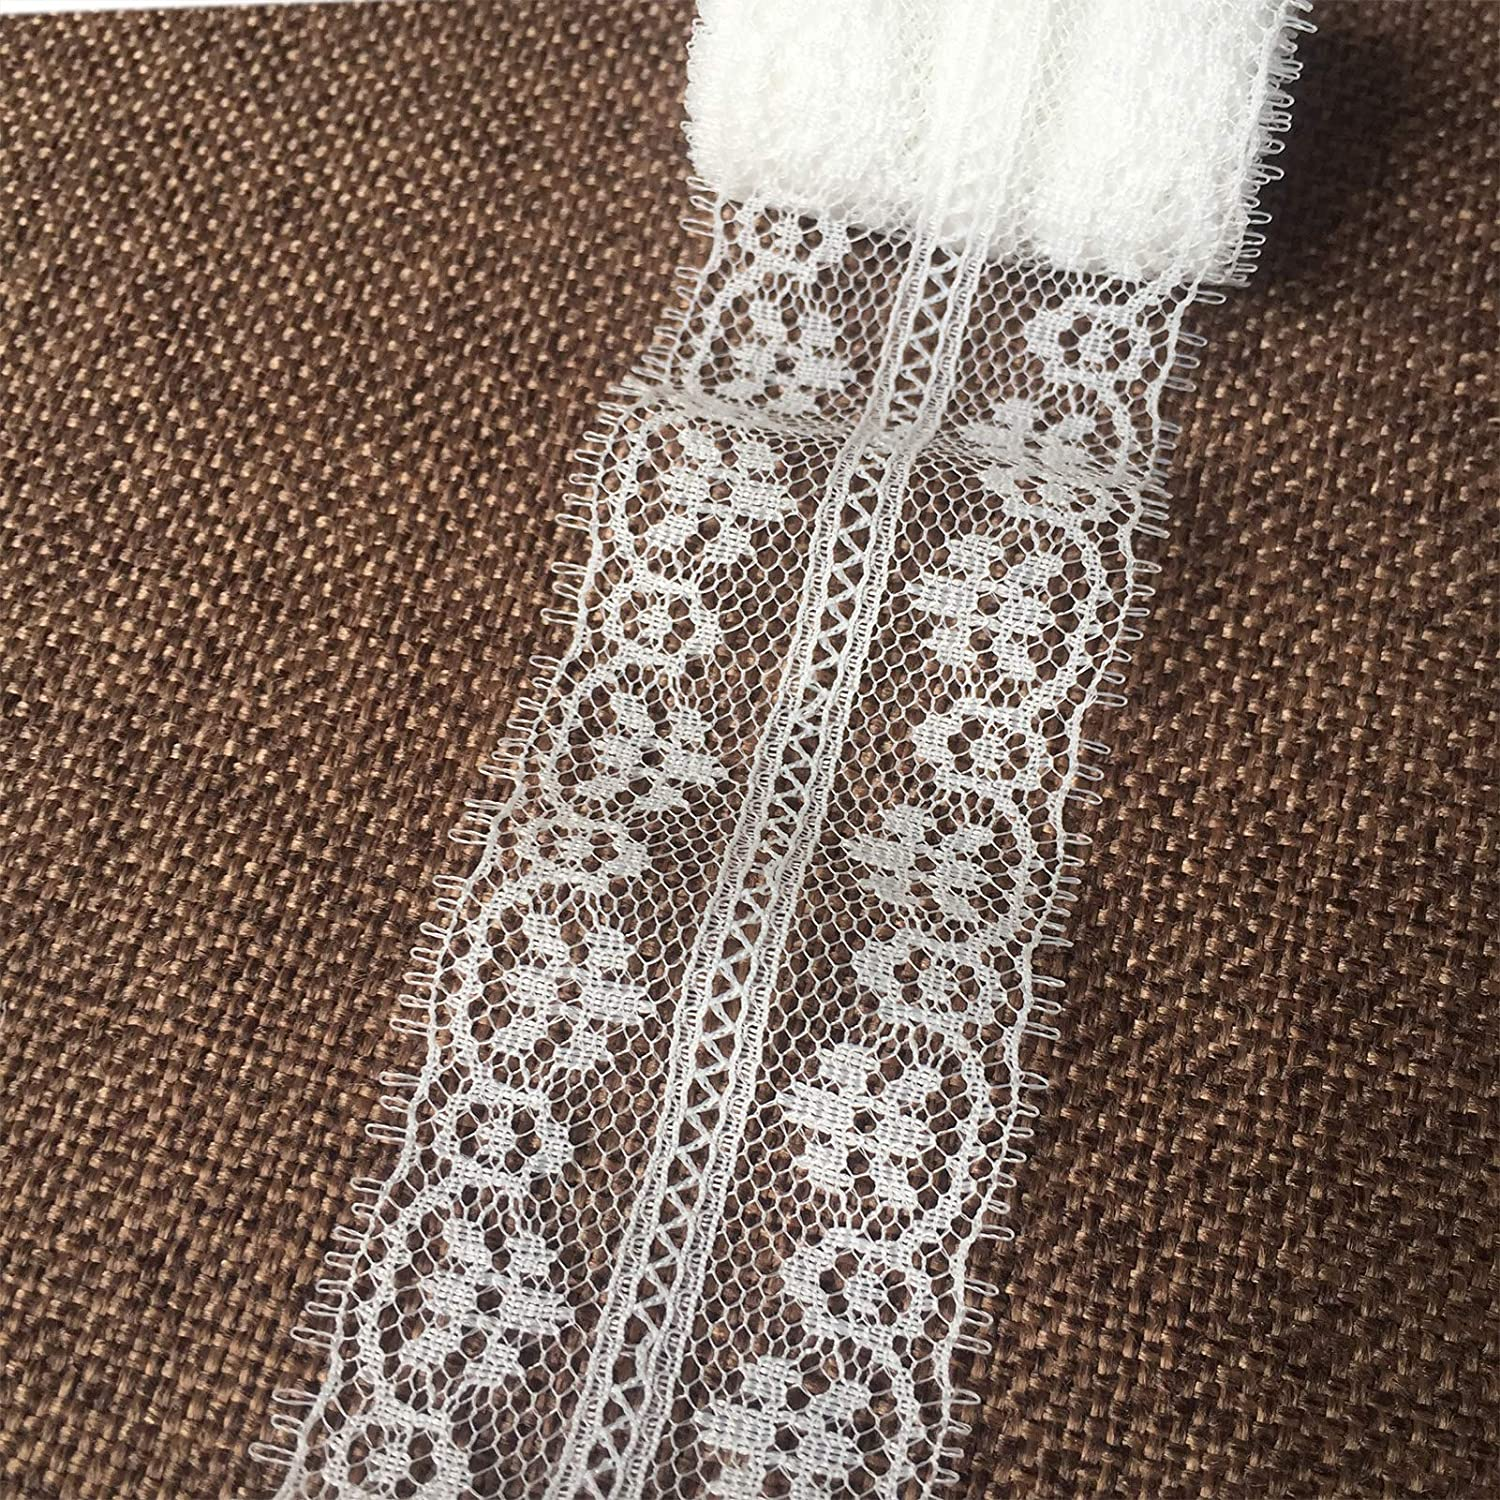 Olive Lace 1.4 inches Wide 10 Yards White lace Trim Ribbon with Floral Pattern for Bridal Wedding Decorations, Sewing DIY Making and DIY Crafts (h703 White)